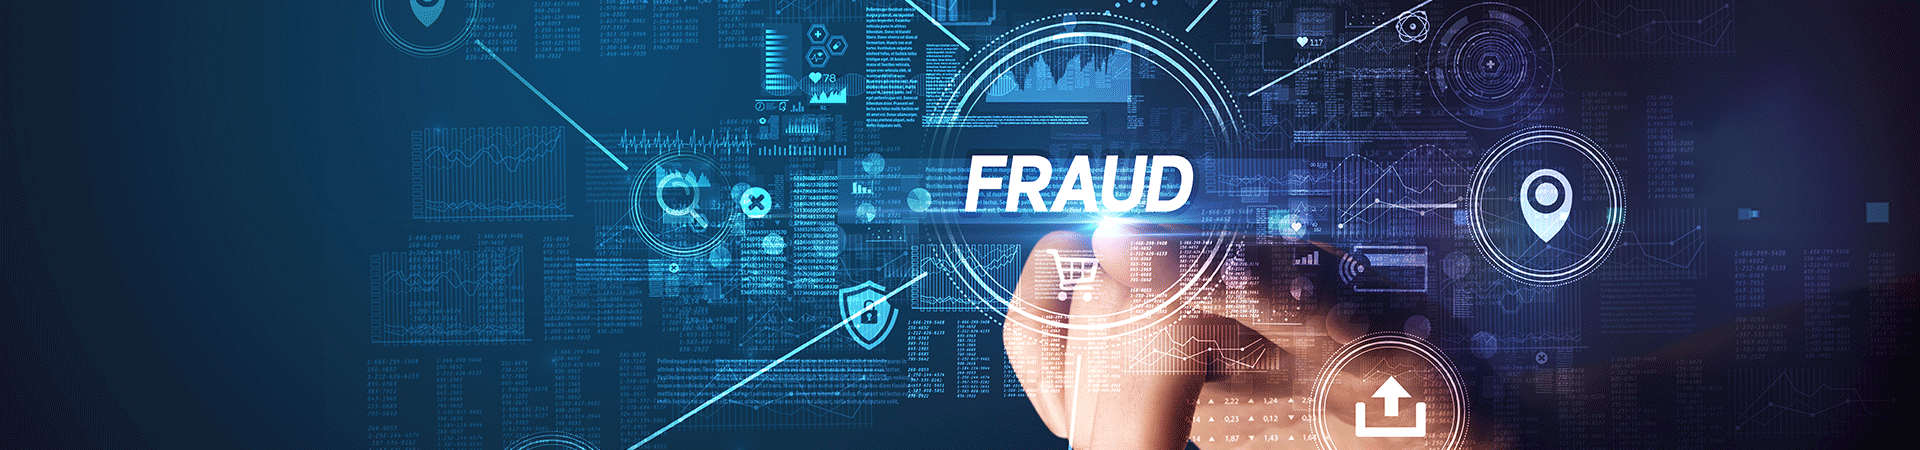 Altair Data Analytics and Financial Fraud Protection